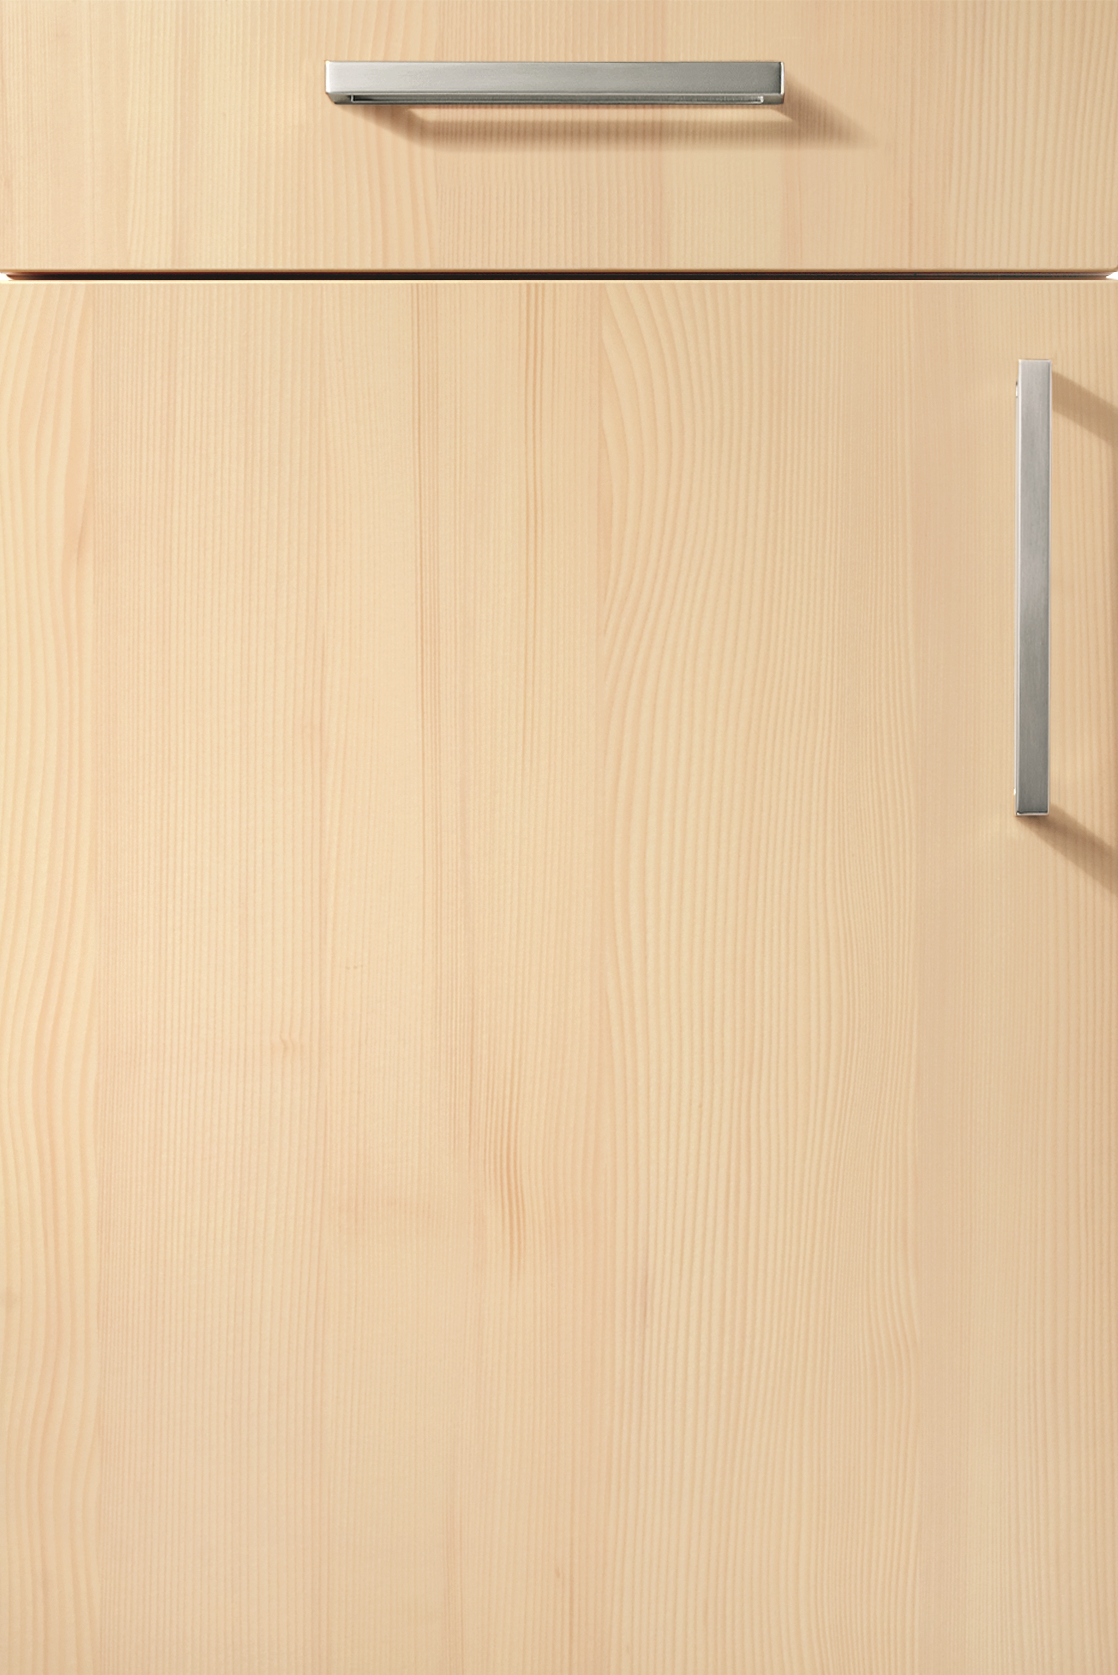 Next 125 NX620 Featured Door Natural Fir Brushed